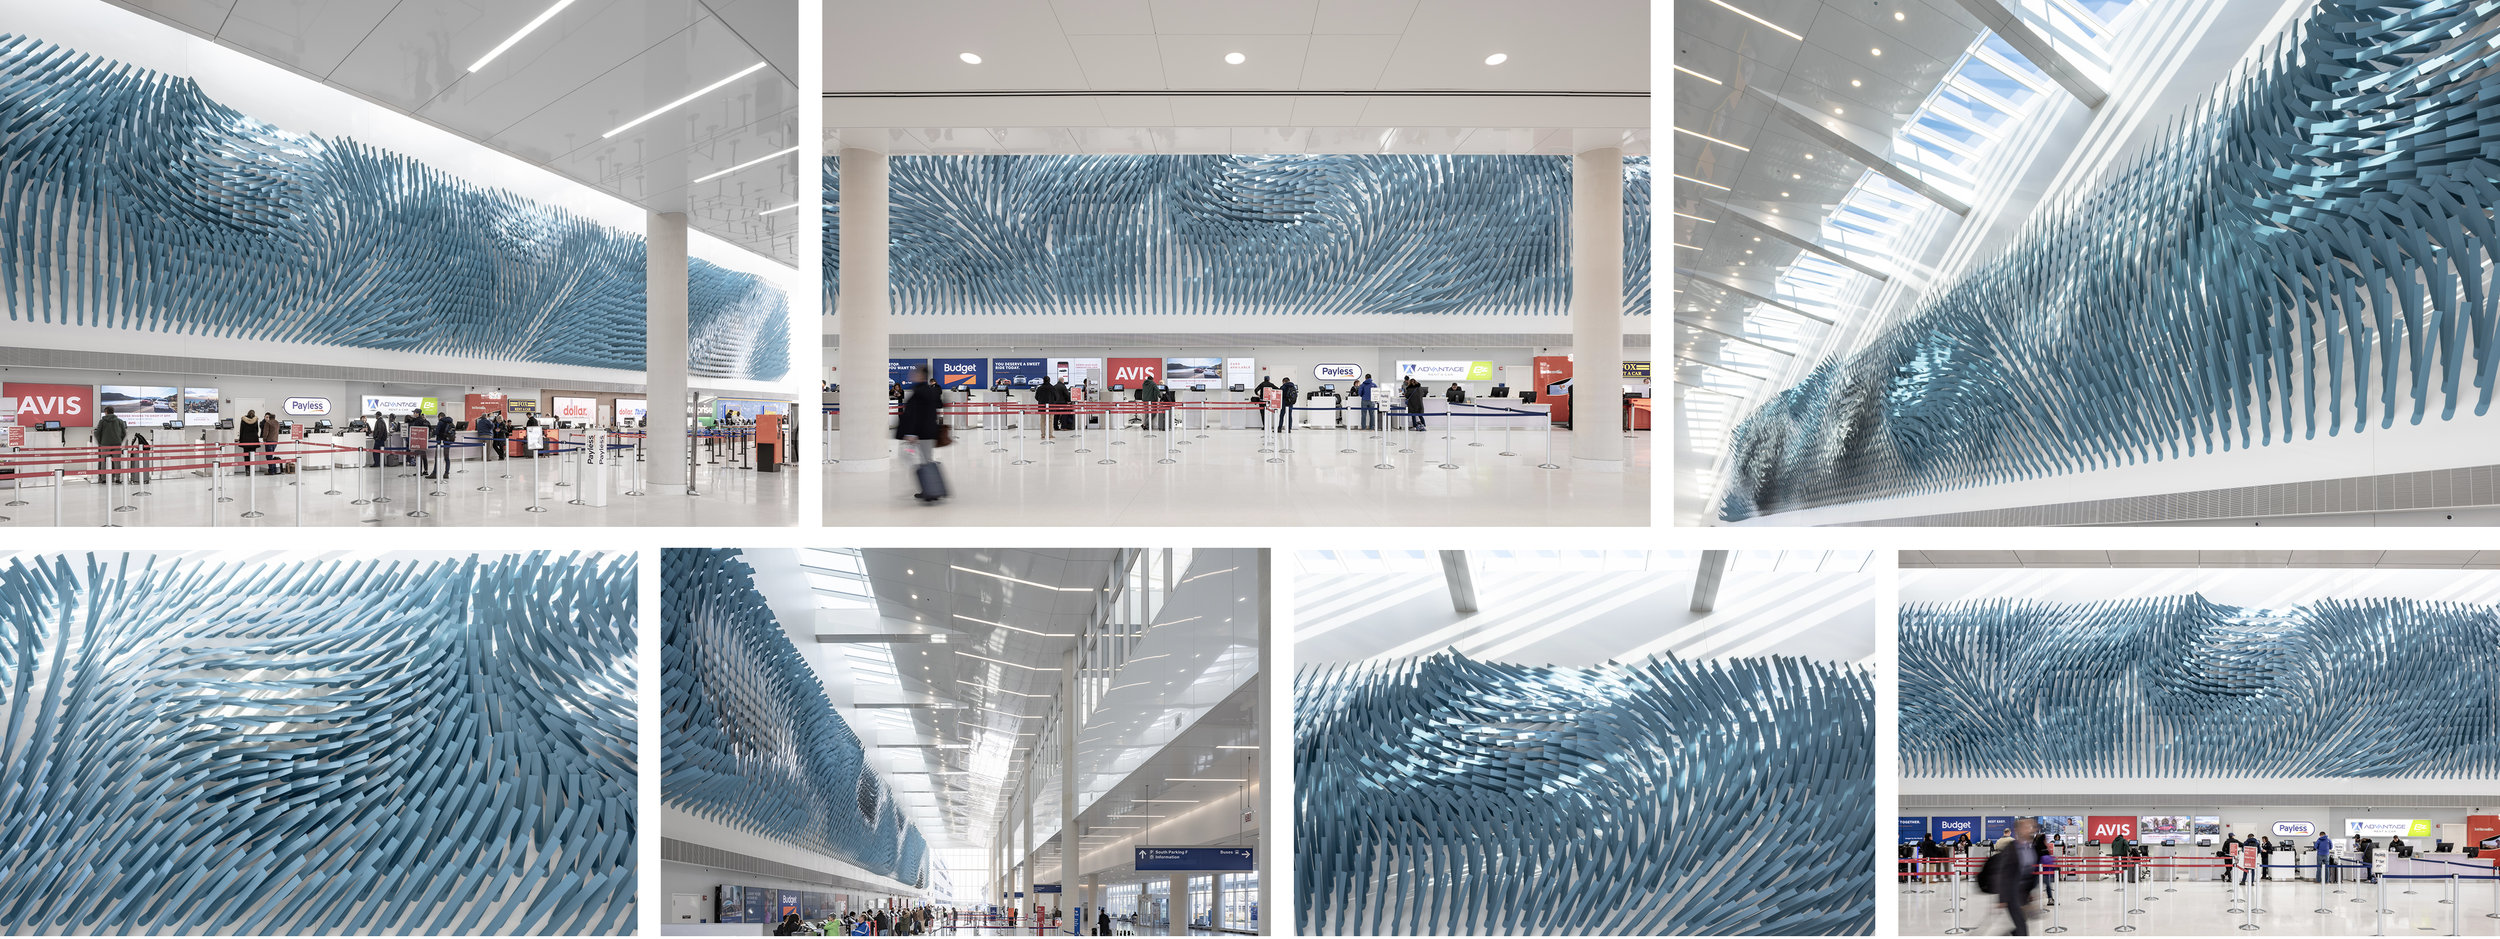 Rob Ley  Field Lines     2018  Painted aluminum  294 x 25 x 2.5 feet  O'Hare Airport Transportation Hub  Chicago, Illinois  Photographer: Alan Tansey      View More Rob Ley